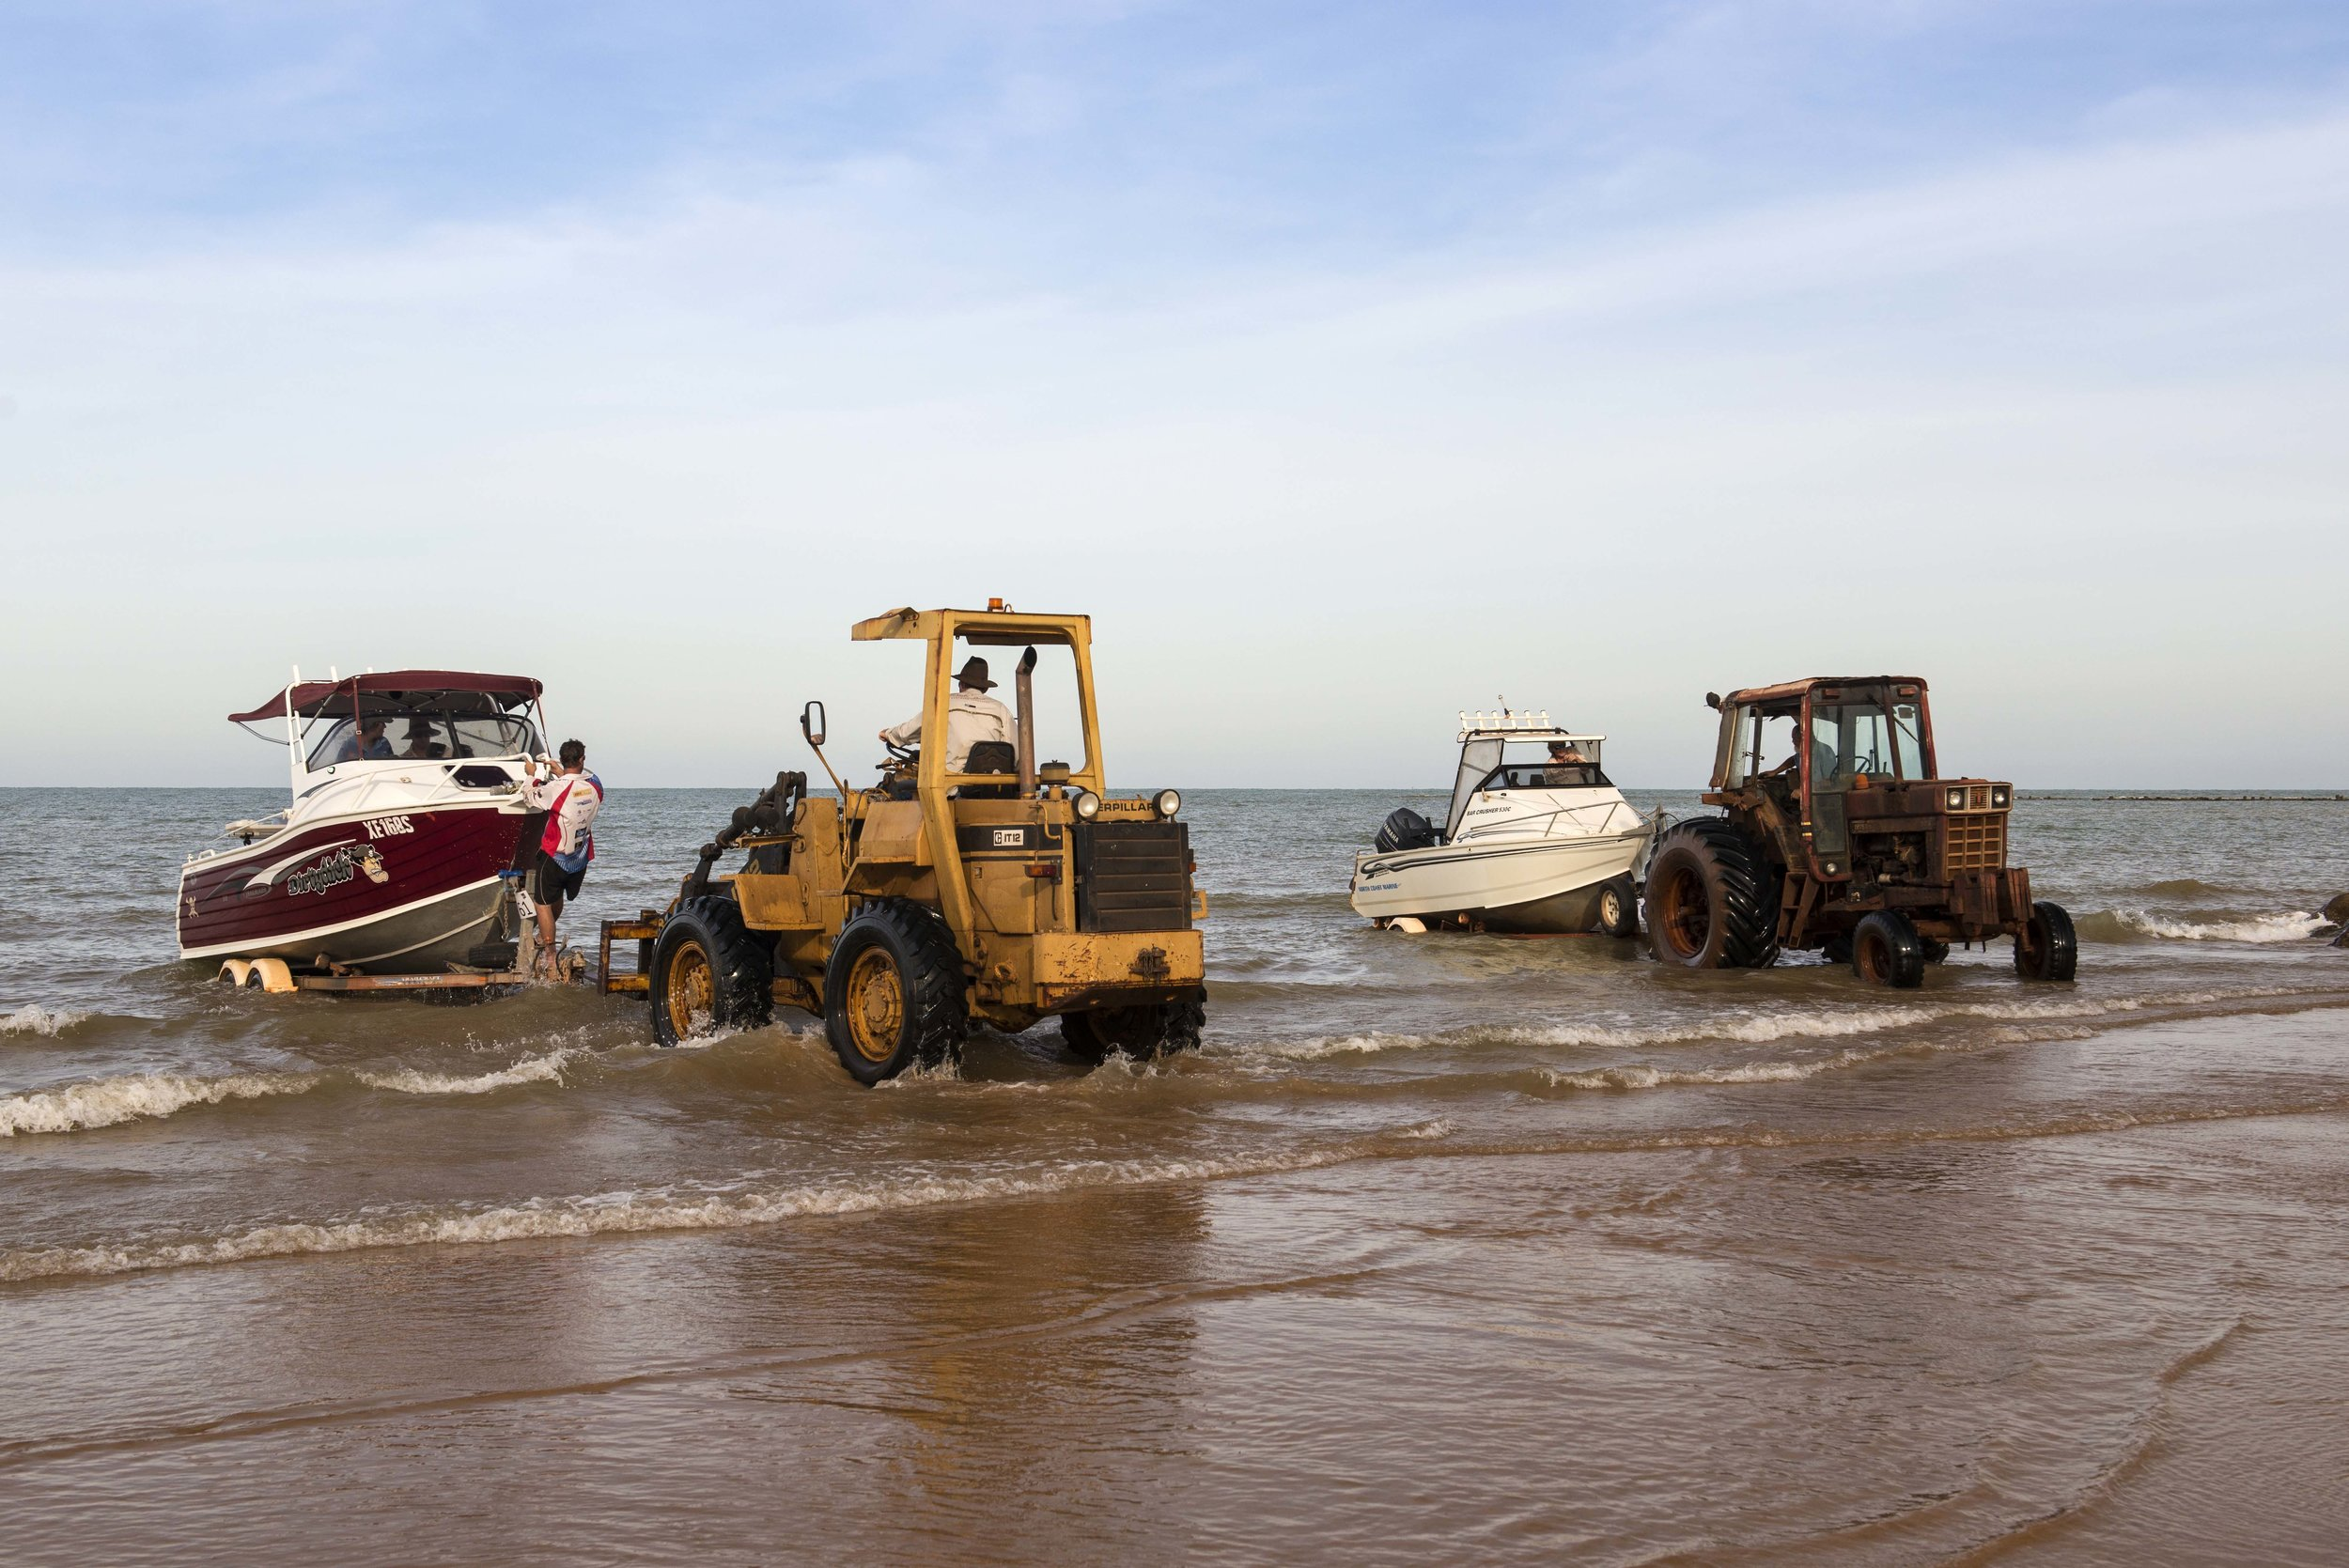 Tractors on the beach to launch boats.